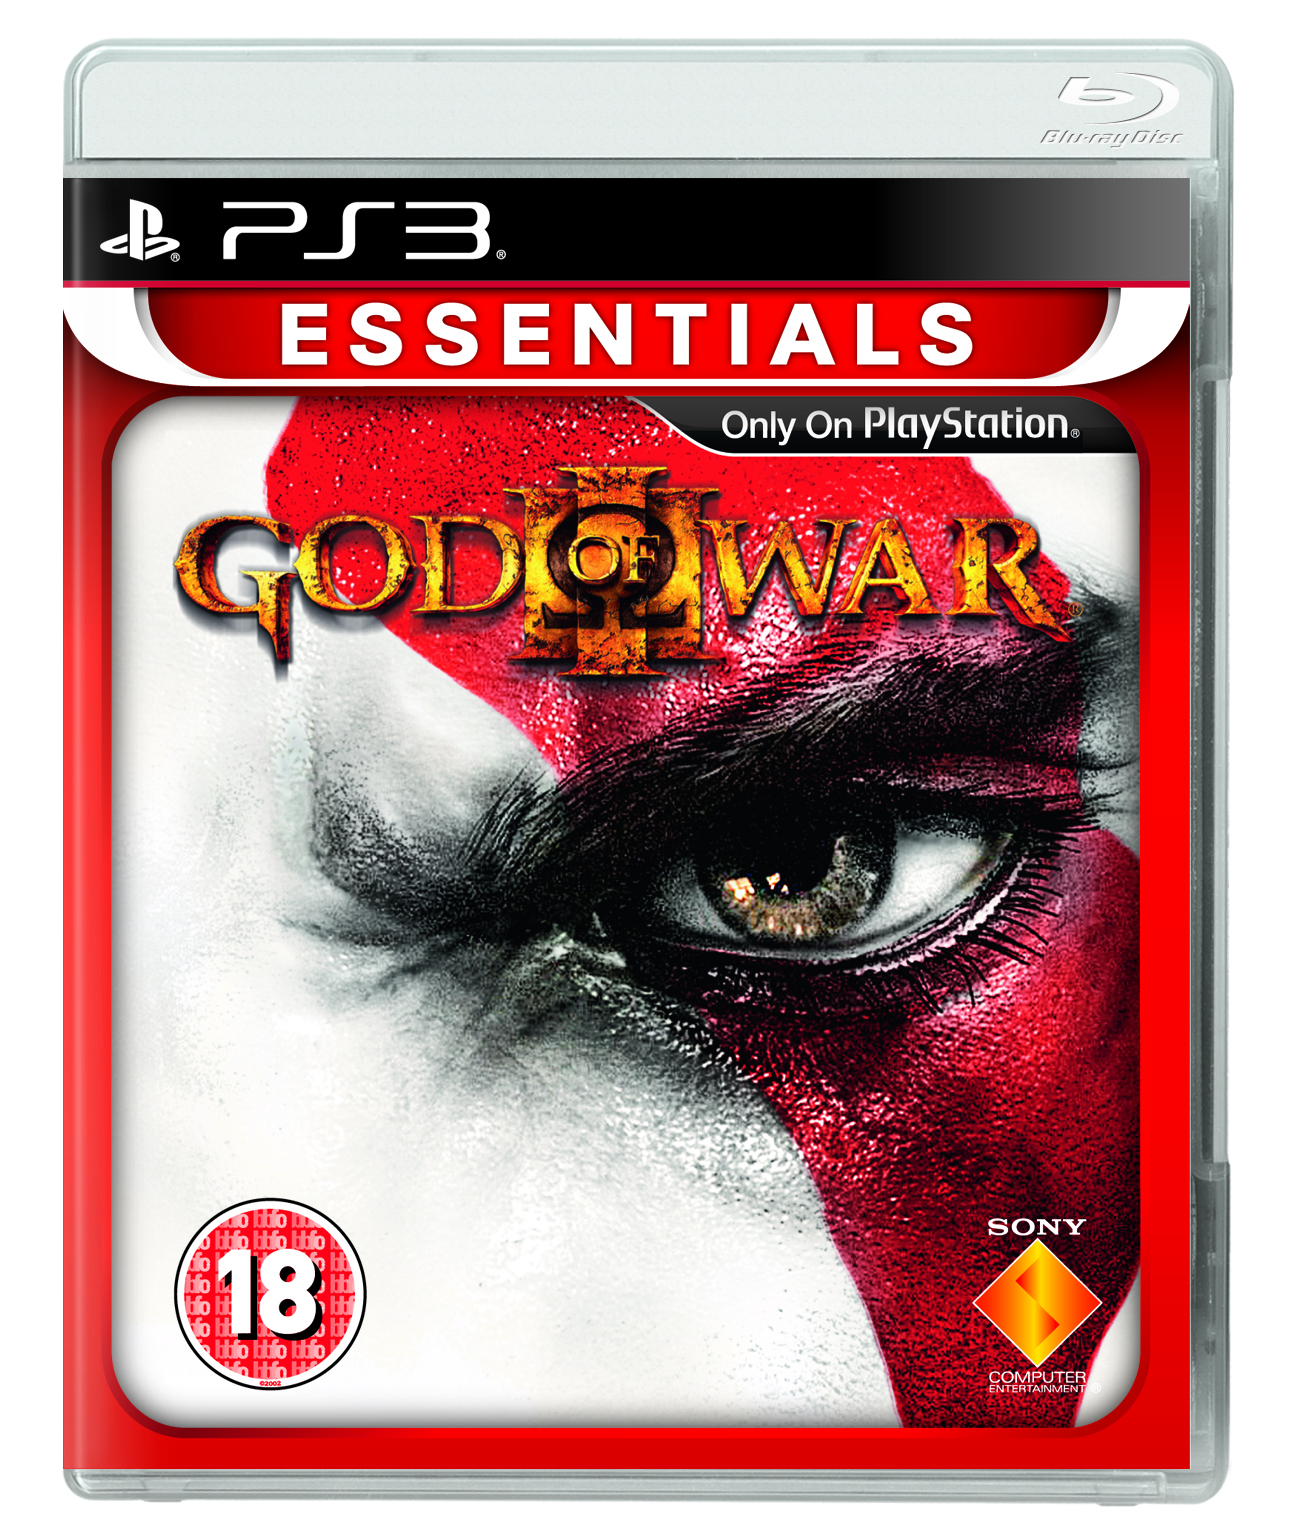 New-Sealed-ESSENTIALS-GOD-OF-WAR-3-Sony-PS3-Game-Free-P-P